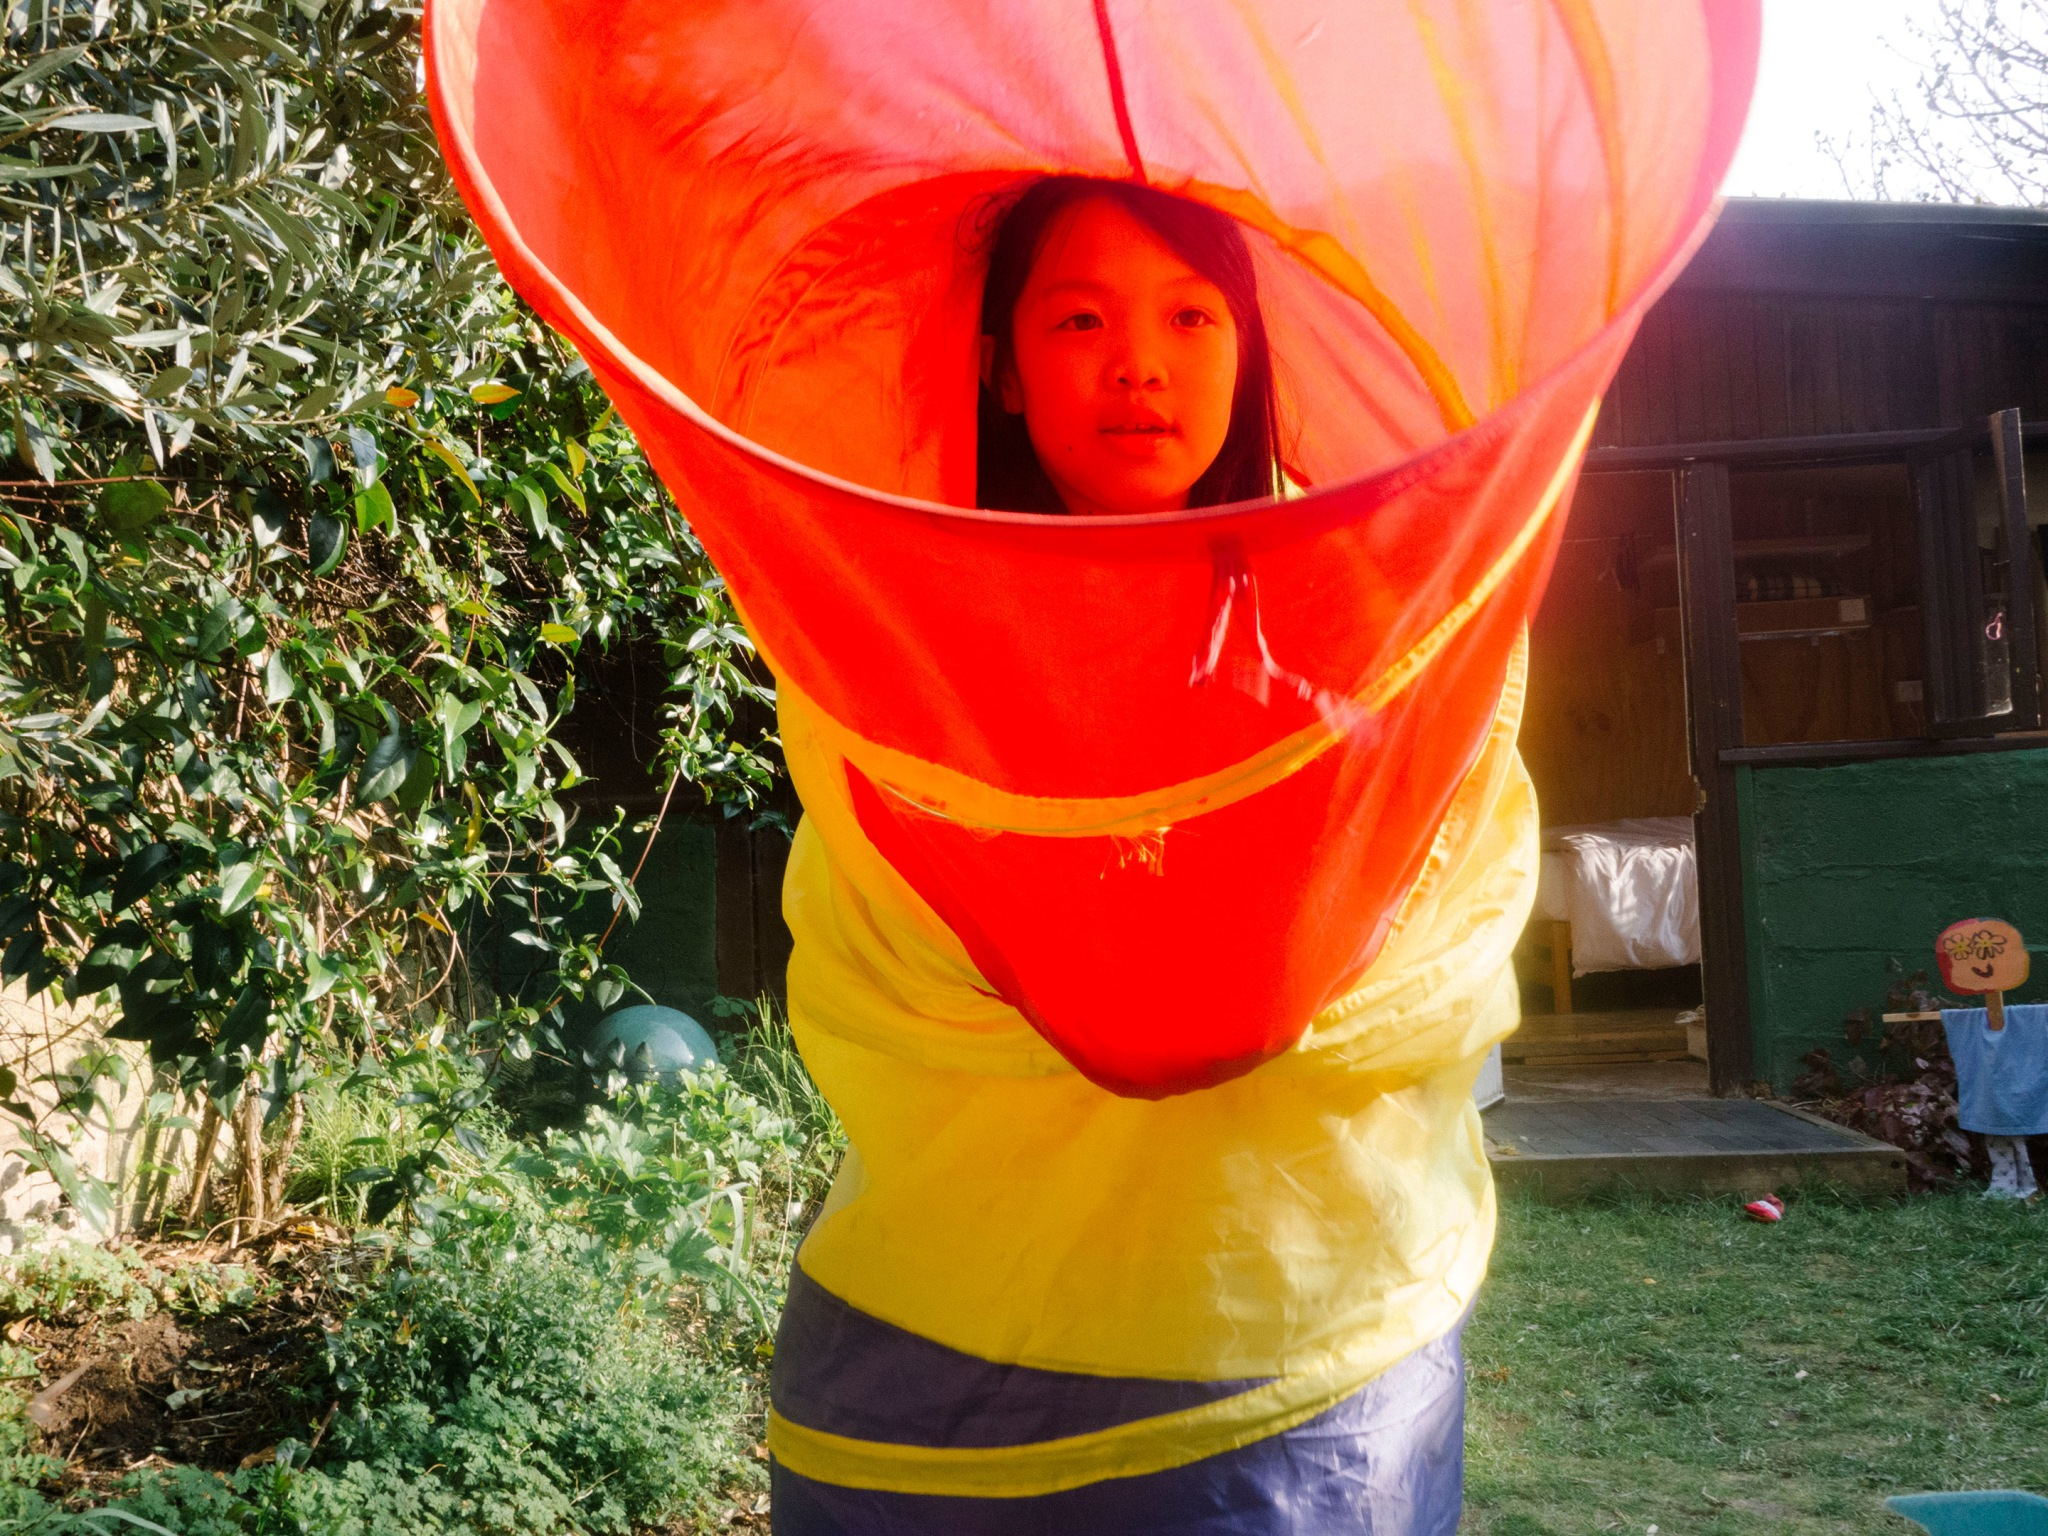 A young girl standing up in a colourful tube in a garden.